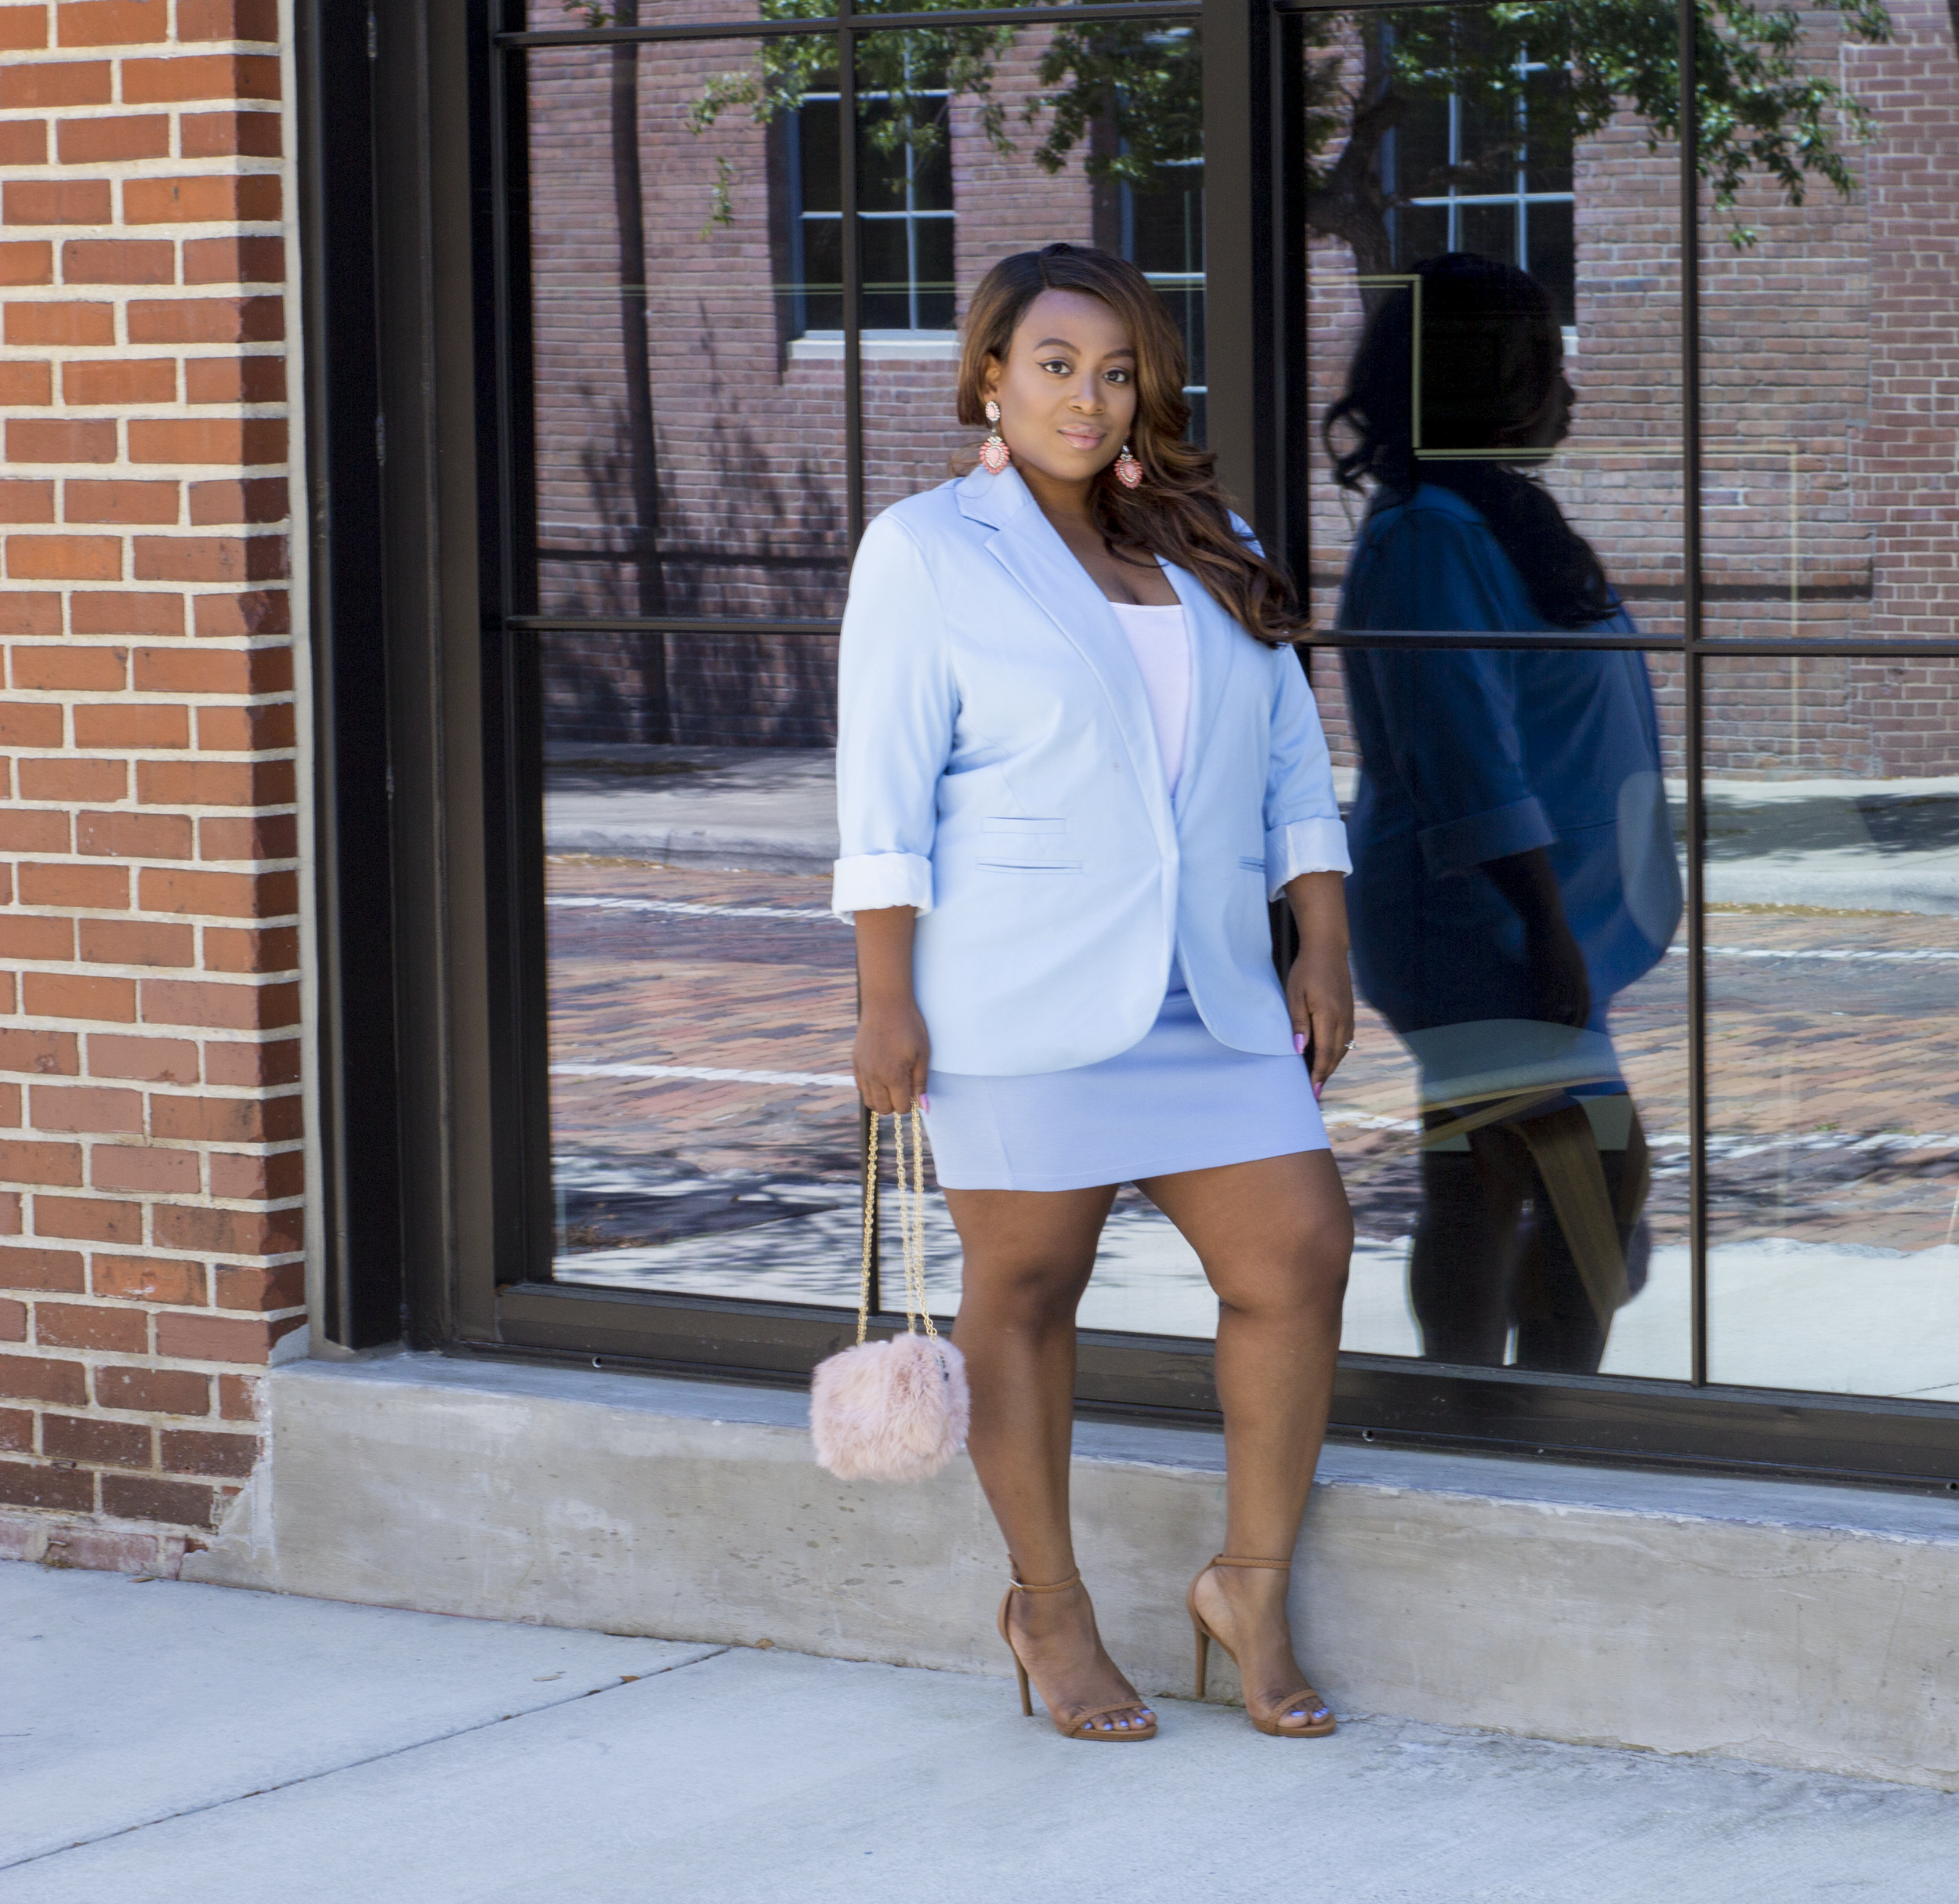 I paired this 'suit' look with some pink drop earrings and a fuzzy pink bag for a bit of playfulness. The nude heels are simple and minimalistic, keeping all of the focus on the outfit.